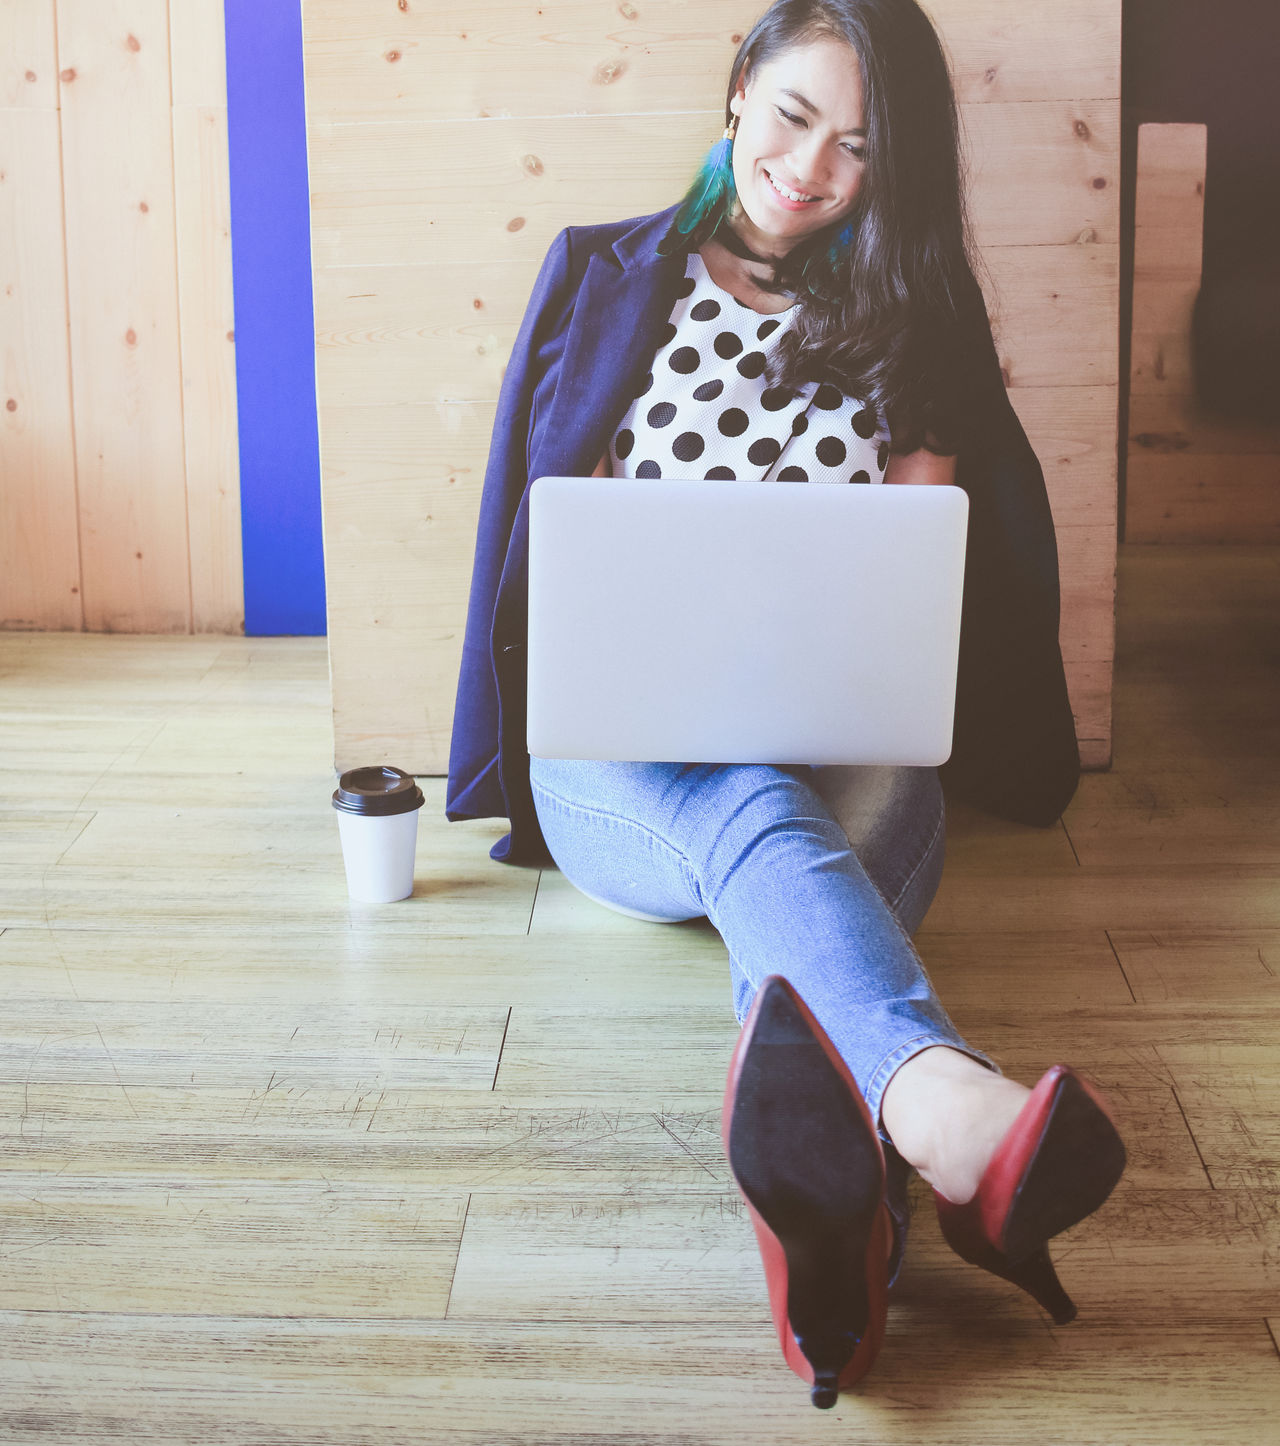 Beautiful fashionable asian woman working with laptop on the wooden floor Adult Asian  Businesswoman Casual Clothing City Life Communication Connection Drink Fashion Floor Happiness Indoors  Laptop Leisure Activity Lifestyles Modern One Person People Sitting Smiling Startup Take Away Coffee Technology Women Young Adult